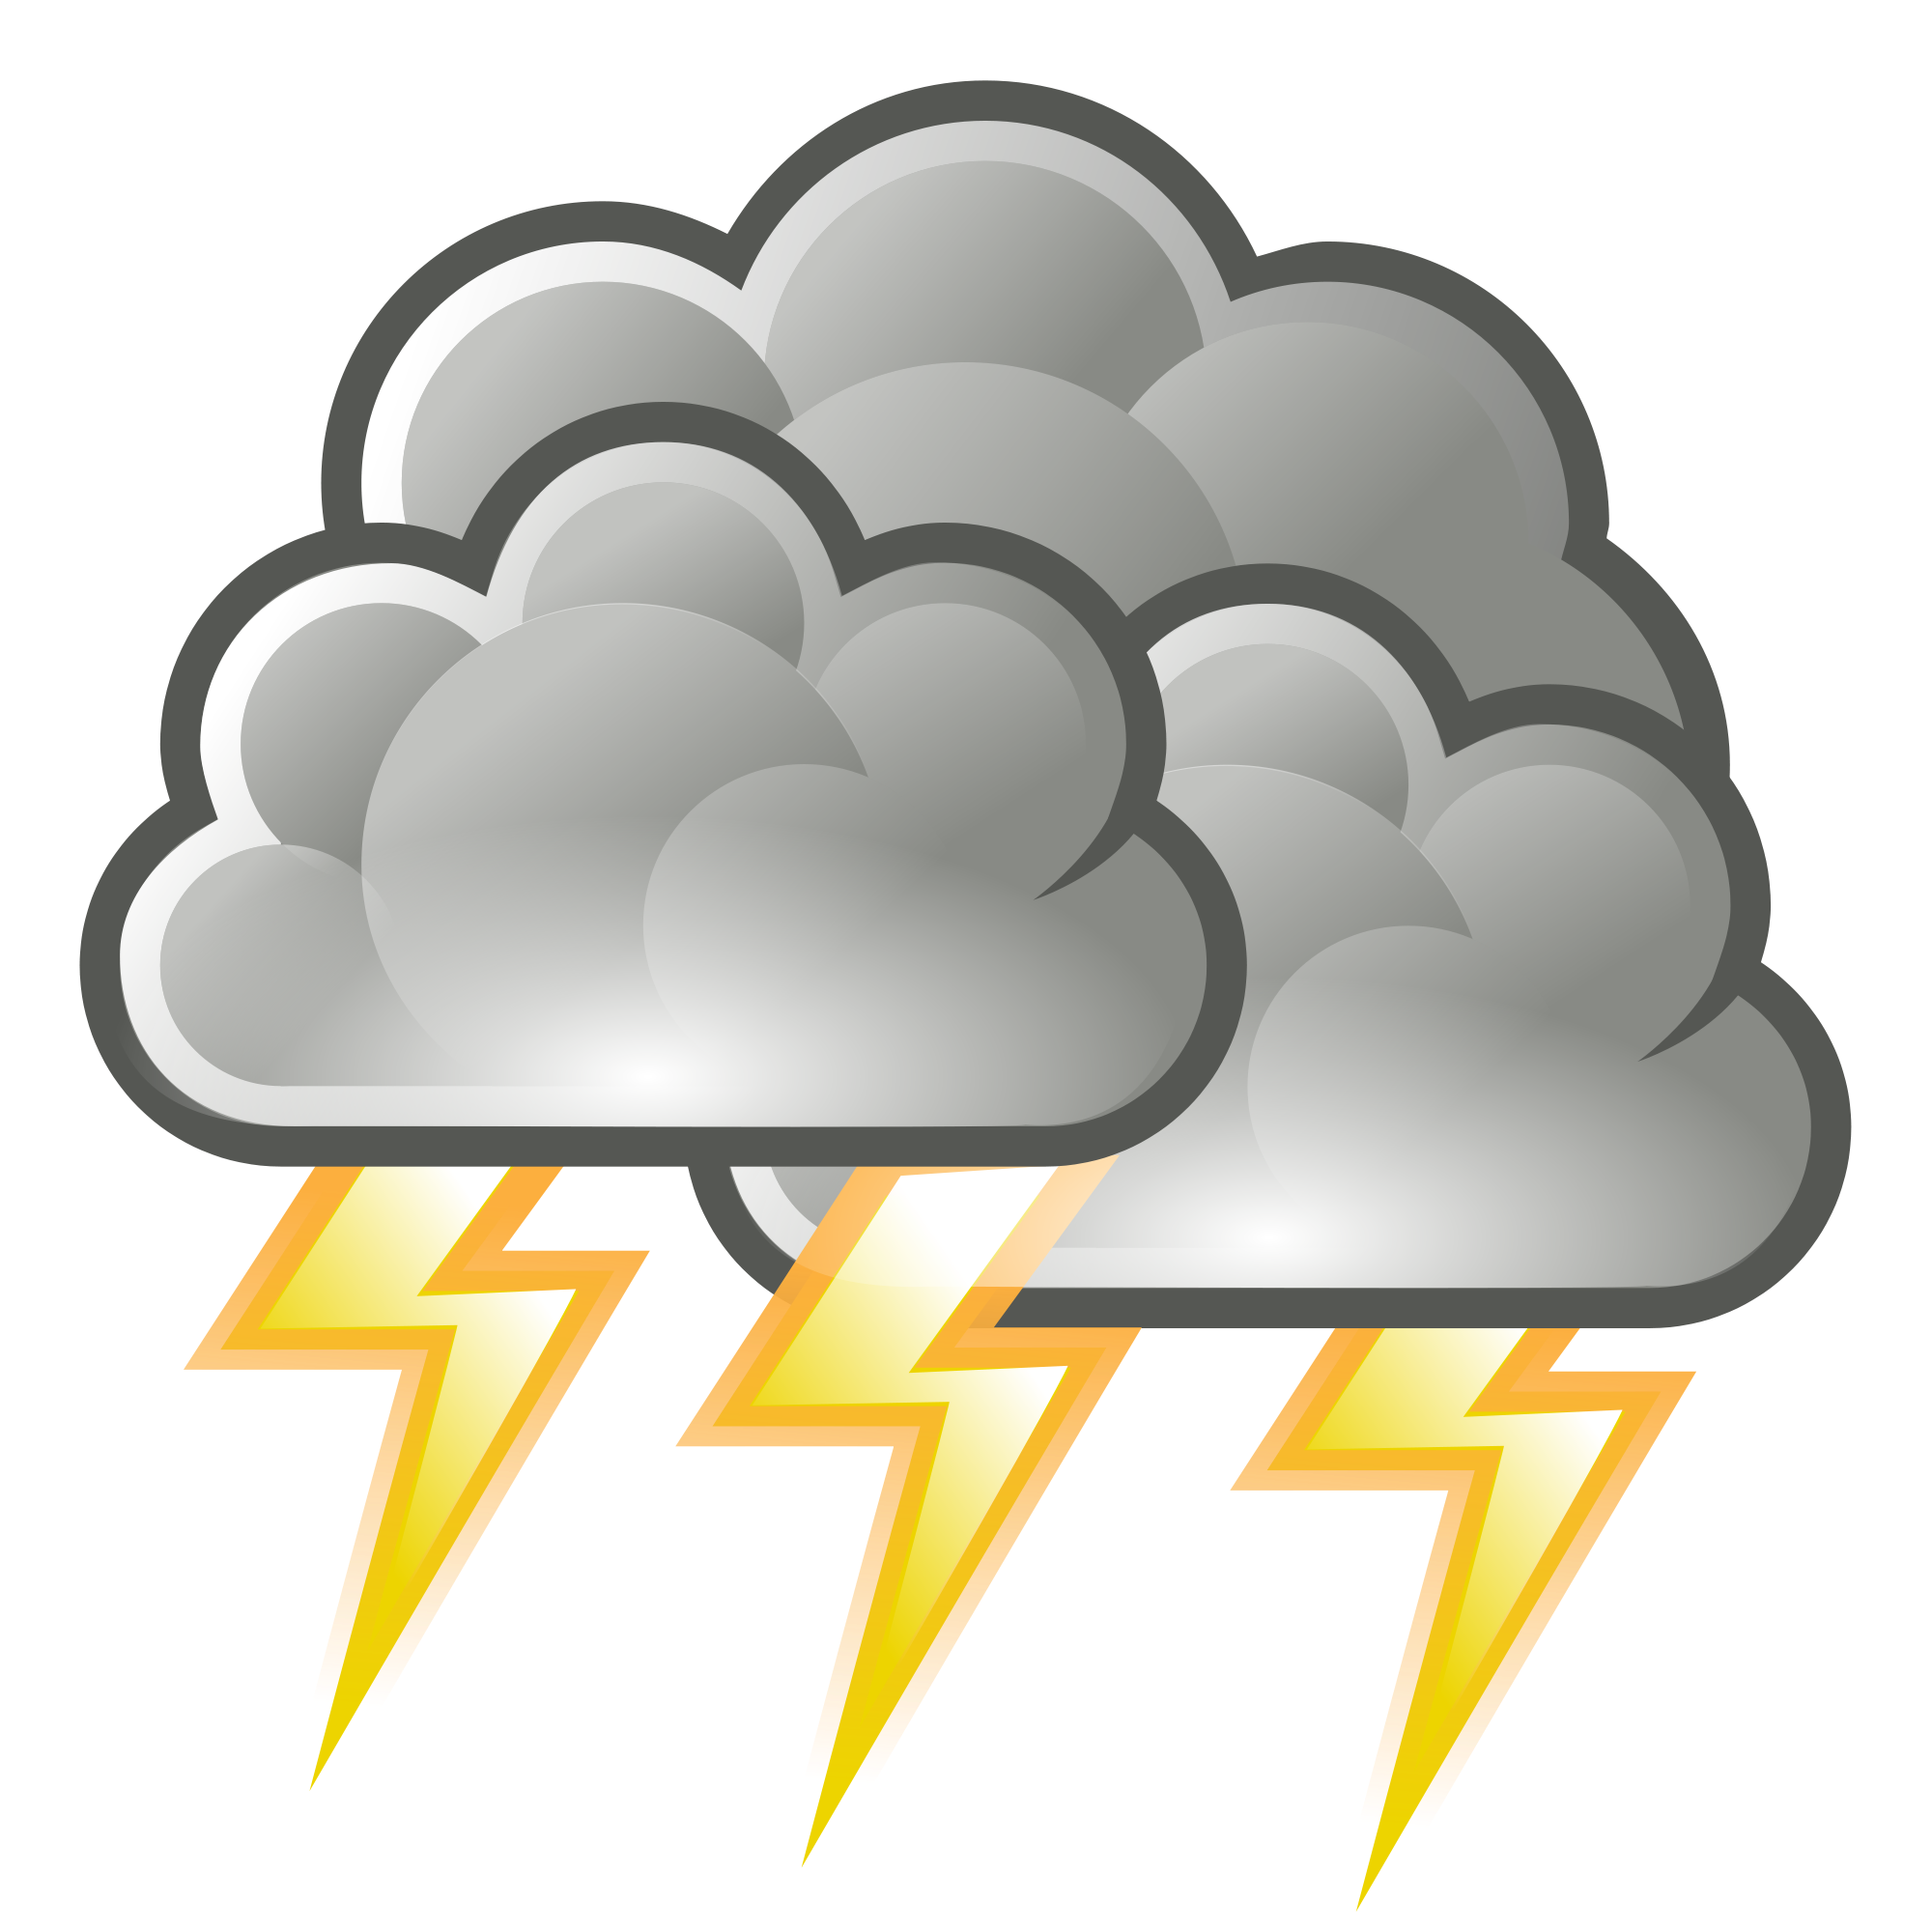 clip art transparent thunderstorm clipart weather tool #51535231